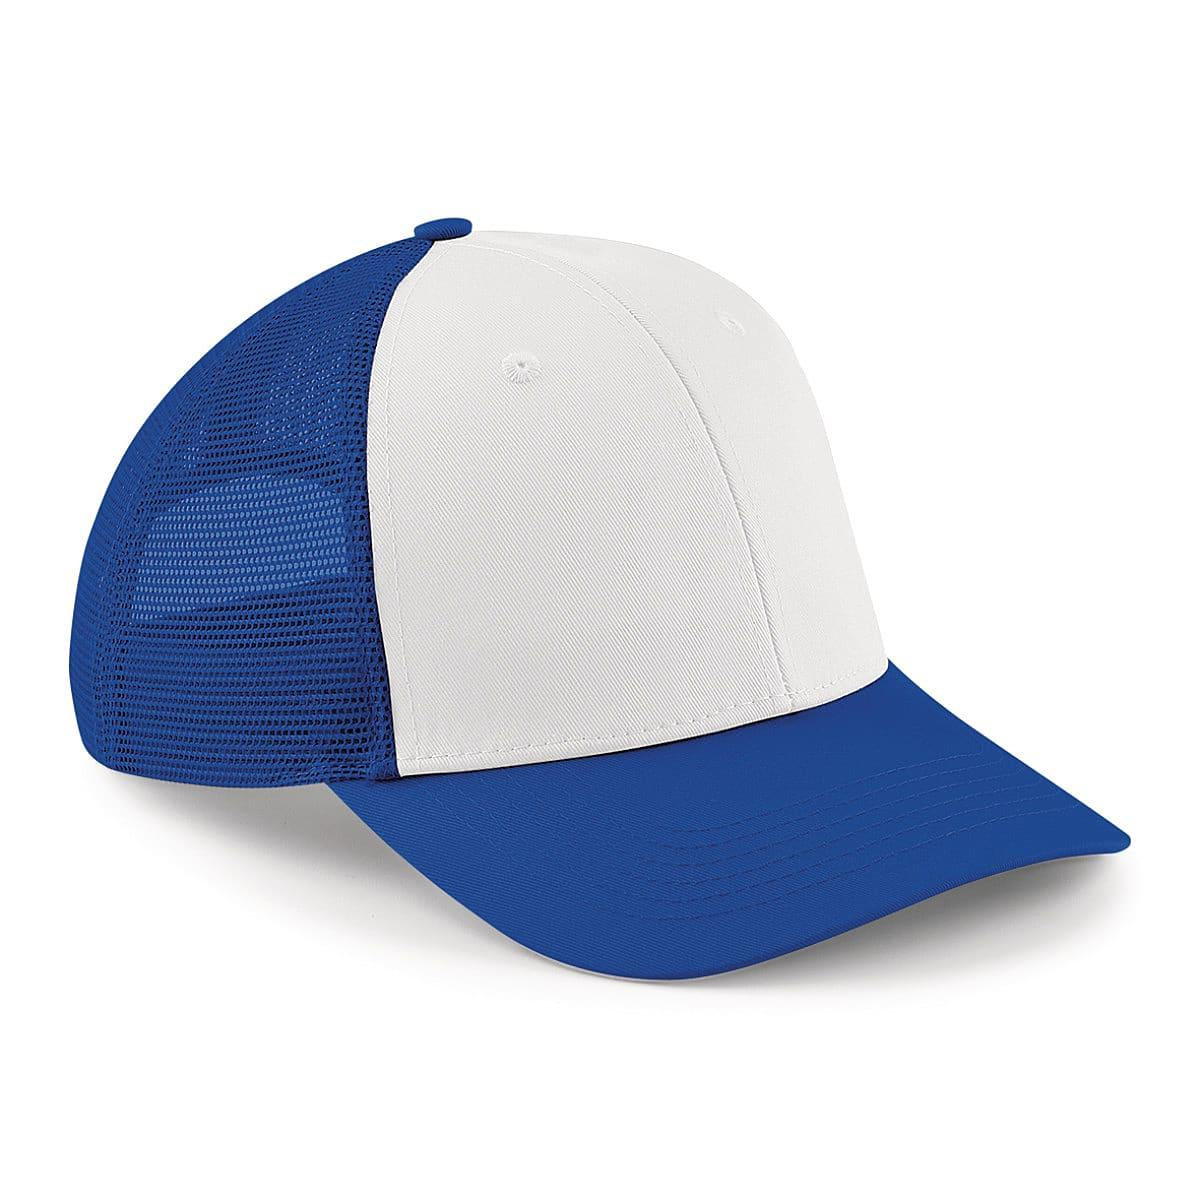 Beechfield 6 Panel Snapback Trucker Cap in Bright Royal / White (Product Code: B647)